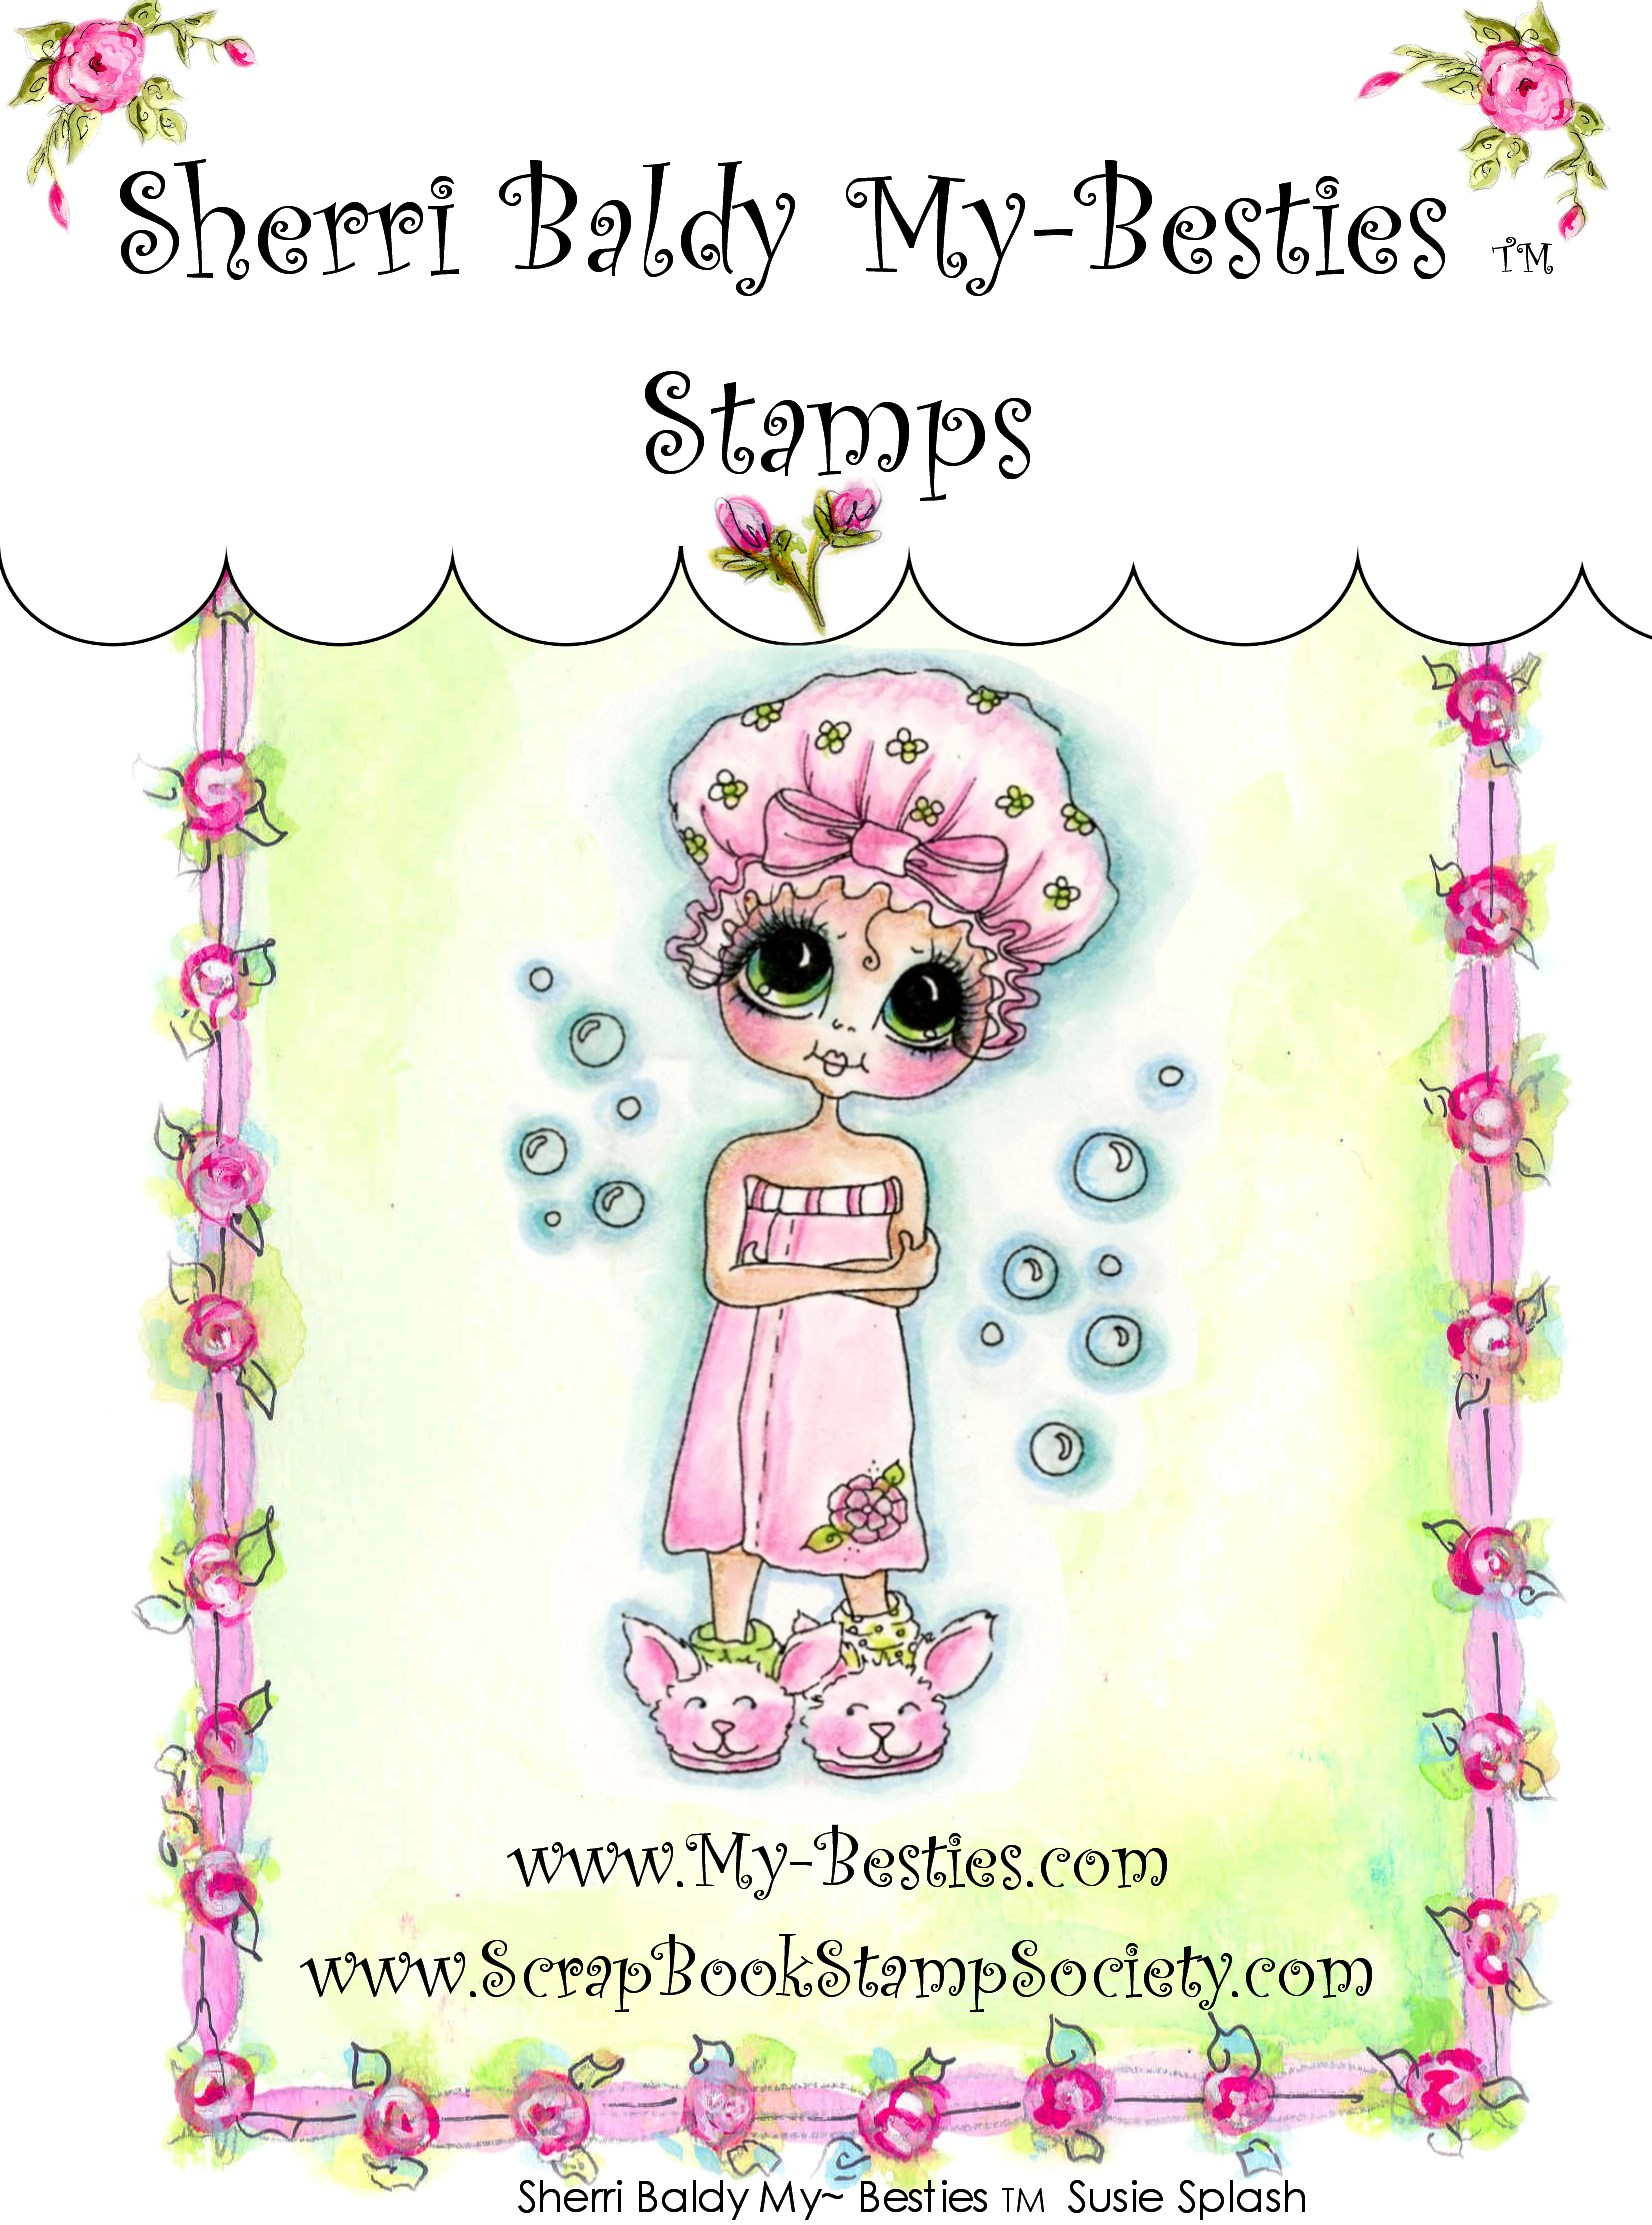 Clear Rubber Stamp SusieSplash-Sherri Baldy, my besties, digi stamps, rubber stamps, big eyed, dolls, Messy Bessy,